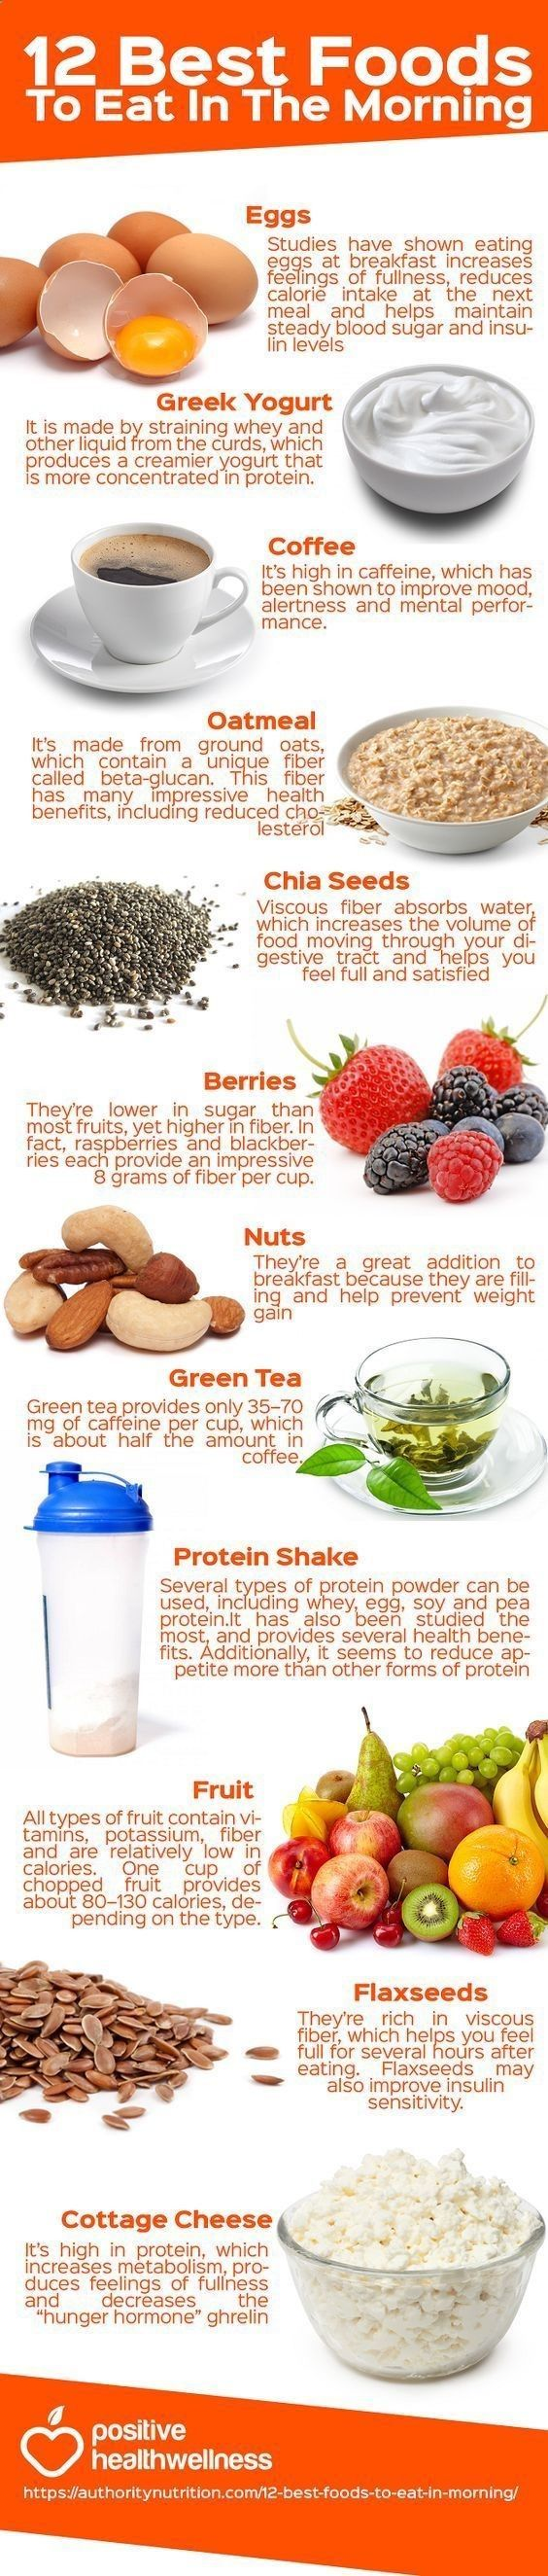 12 best foods to eat in the morning includes fruits, cottage cheese, flaxseeds, protein shake, nuts, berries, chia seeds, eggs, greek yogurt, and coffee. Take the free nutrition for weight loss course today! www.jorgewellness...